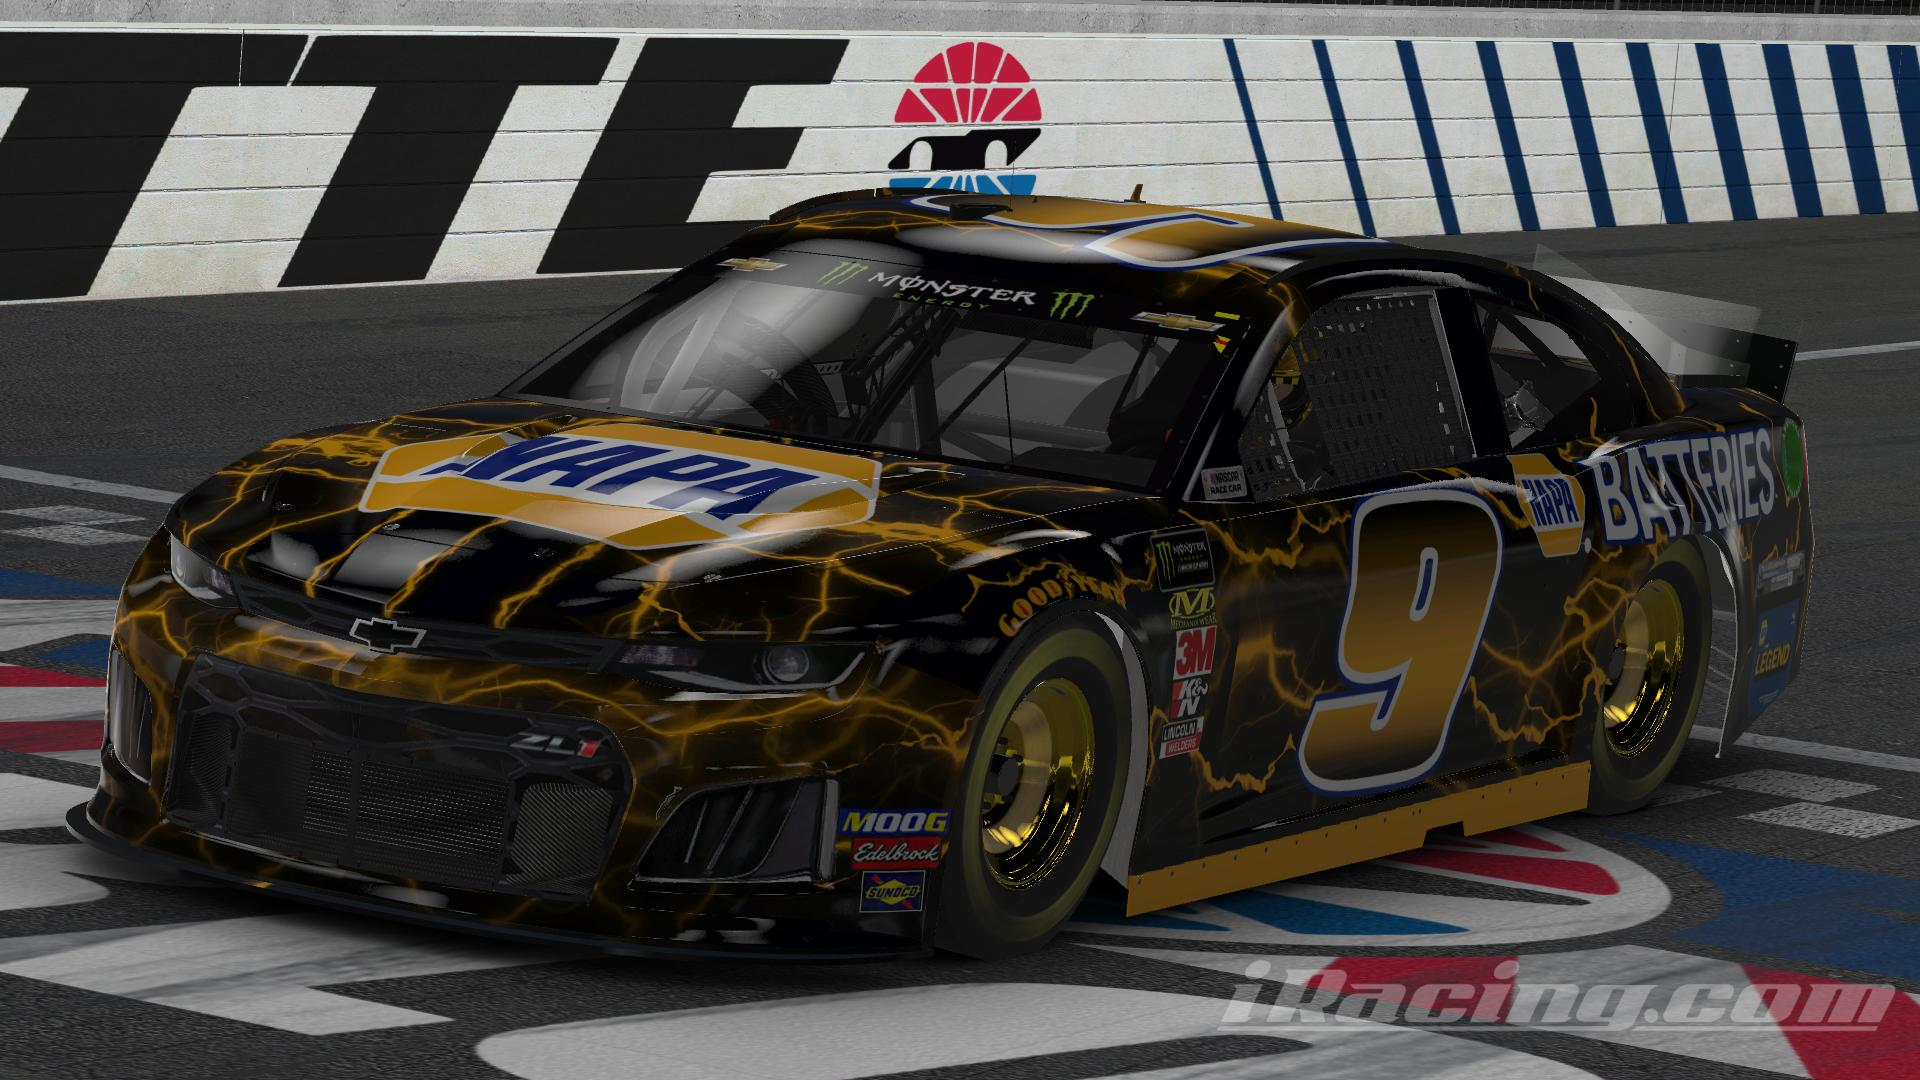 Preview of NAPA Chase Elliott Legend Battery Black Car (No #) by Chris T J.